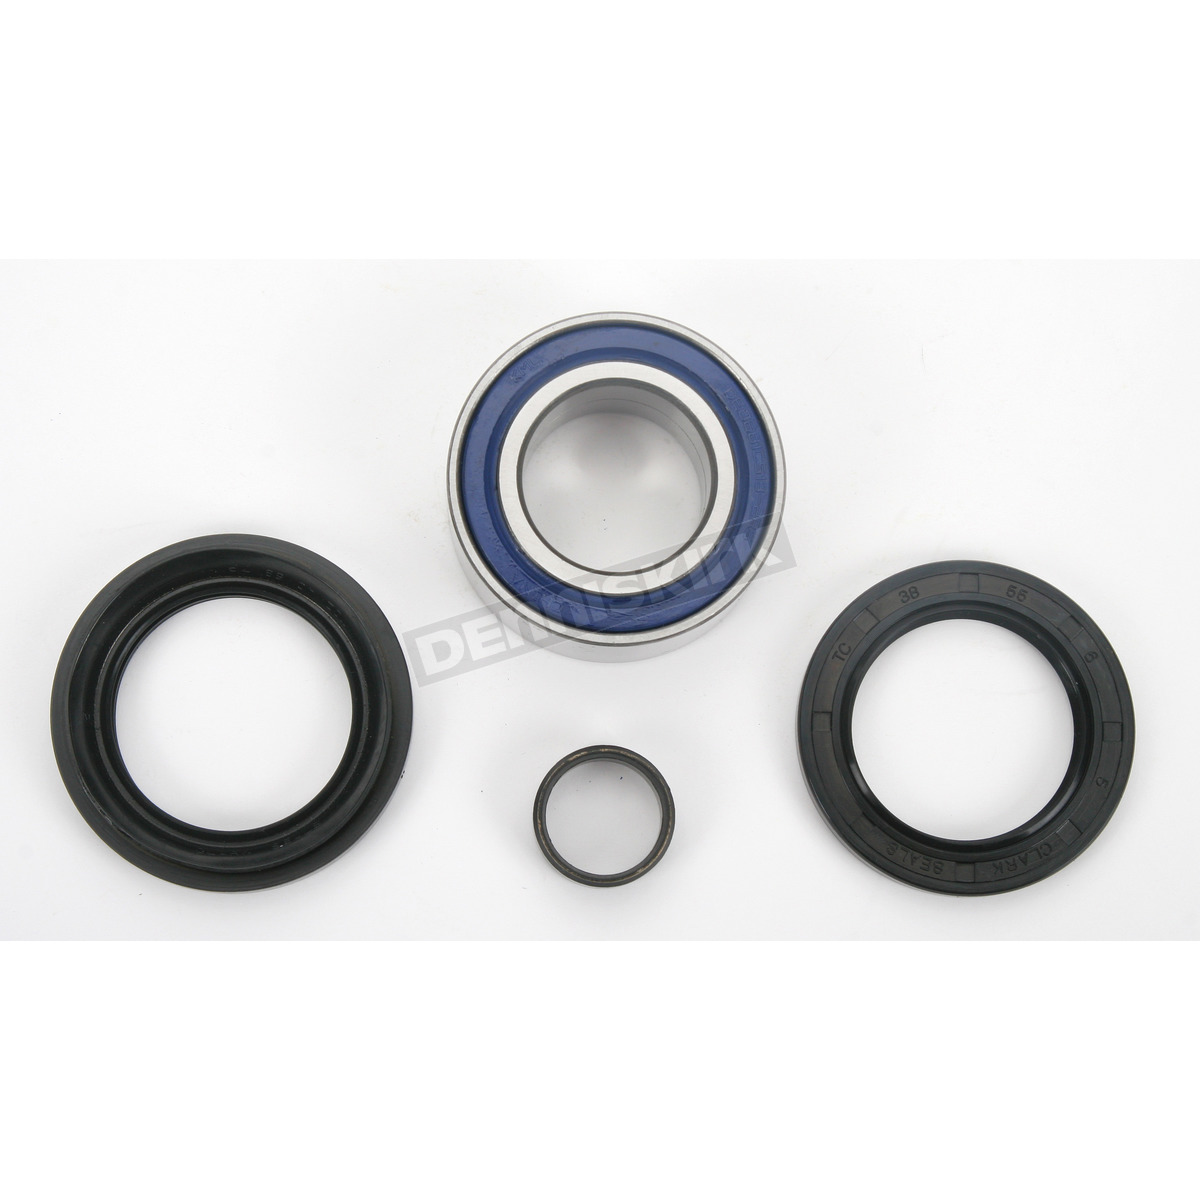 NEW MOOSE Wheel Bearing Kit A25-1005